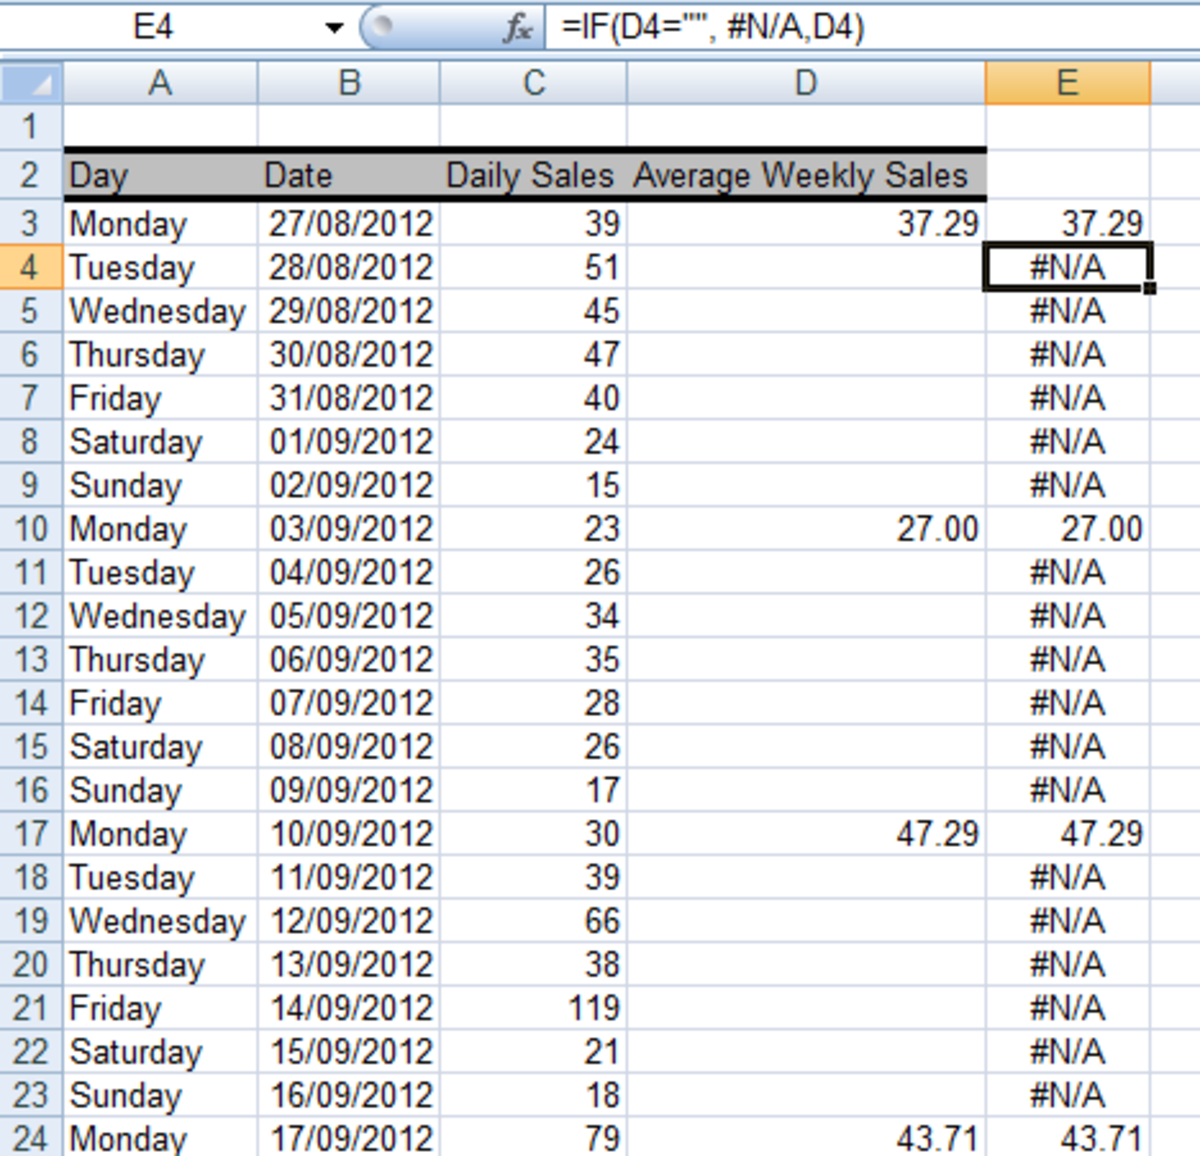 Ediblewildsus  Marvelous How To Get Excel  And  To Ignore Empty Cells In A Chart Or  With Glamorous Using The If Function In A Formula To Convert Empty Cells To Na With Appealing Extract Hyperlink Excel Also Number E In Excel In Addition Convert From Word To Excel And Ratio Formula In Excel As Well As Excel Unlock Sheet Additionally Export Json To Excel From Turbofuturecom With Ediblewildsus  Glamorous How To Get Excel  And  To Ignore Empty Cells In A Chart Or  With Appealing Using The If Function In A Formula To Convert Empty Cells To Na And Marvelous Extract Hyperlink Excel Also Number E In Excel In Addition Convert From Word To Excel From Turbofuturecom